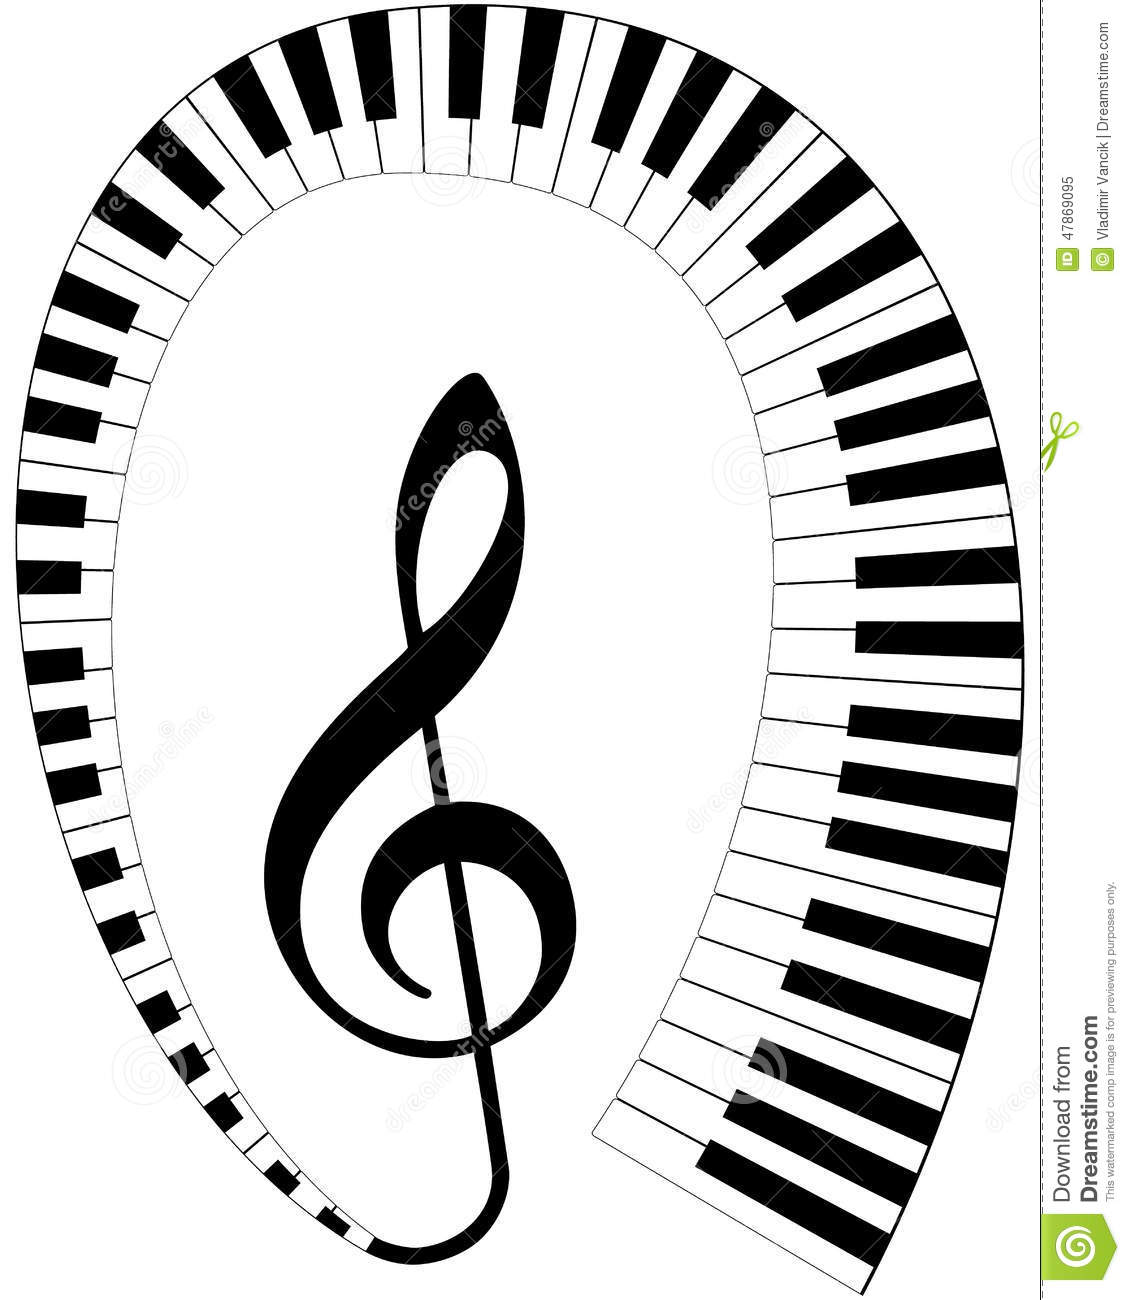 Piano Keys Clipart as well Speciesinfo furthermore Piano Keyboard Diagram likewise Round Black And White Piano Keyboard Frame Vector 12791307 besides Circle  work Prezi Template. on notes of key